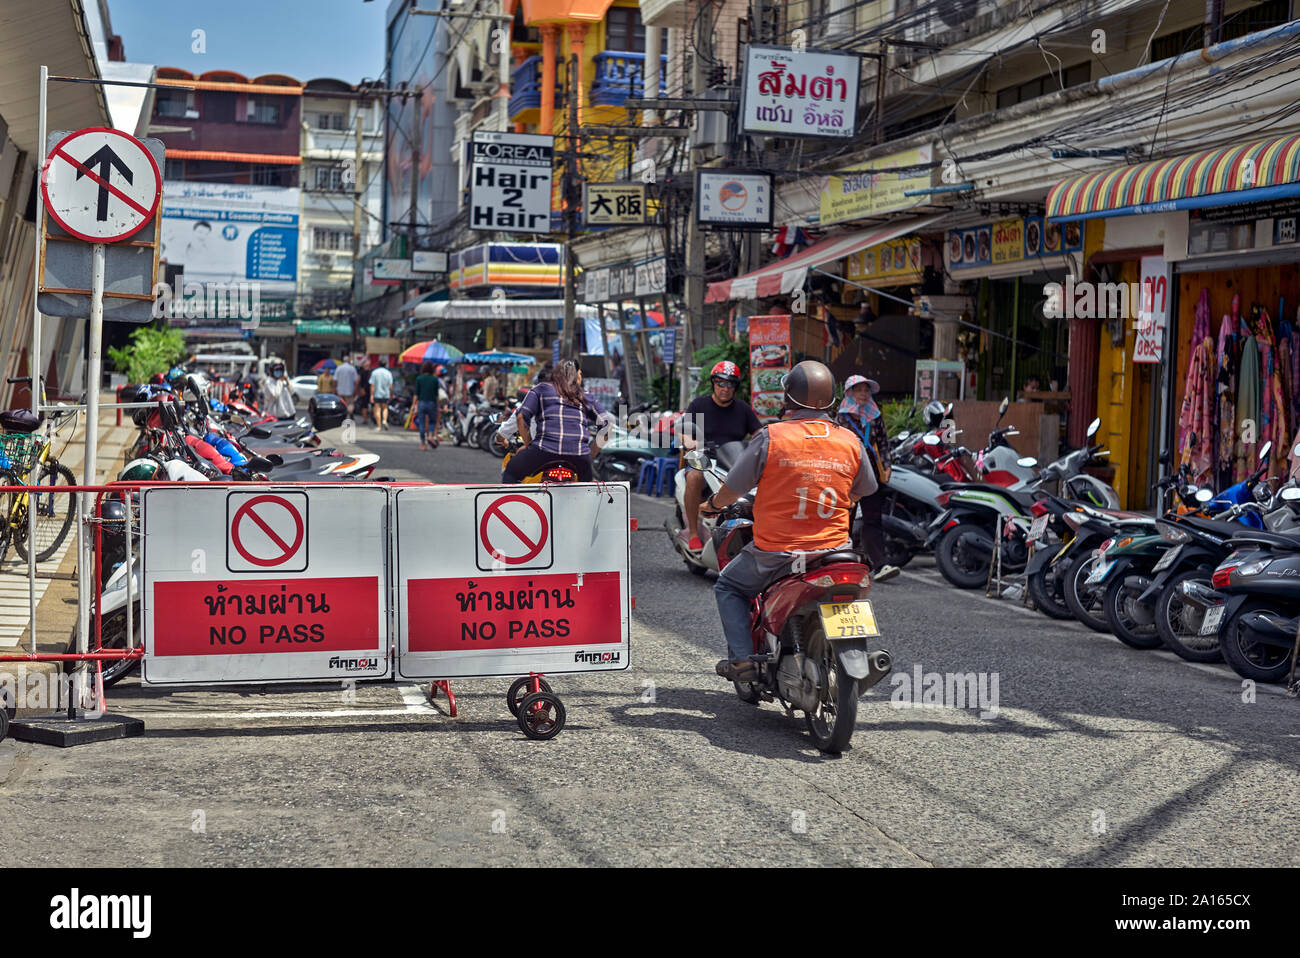 No entry sign. Motorbike riders blatantly ignoring a No Pass sign and heading the wrong way down a one way street. Thailand Southeast Asia Stock Photo